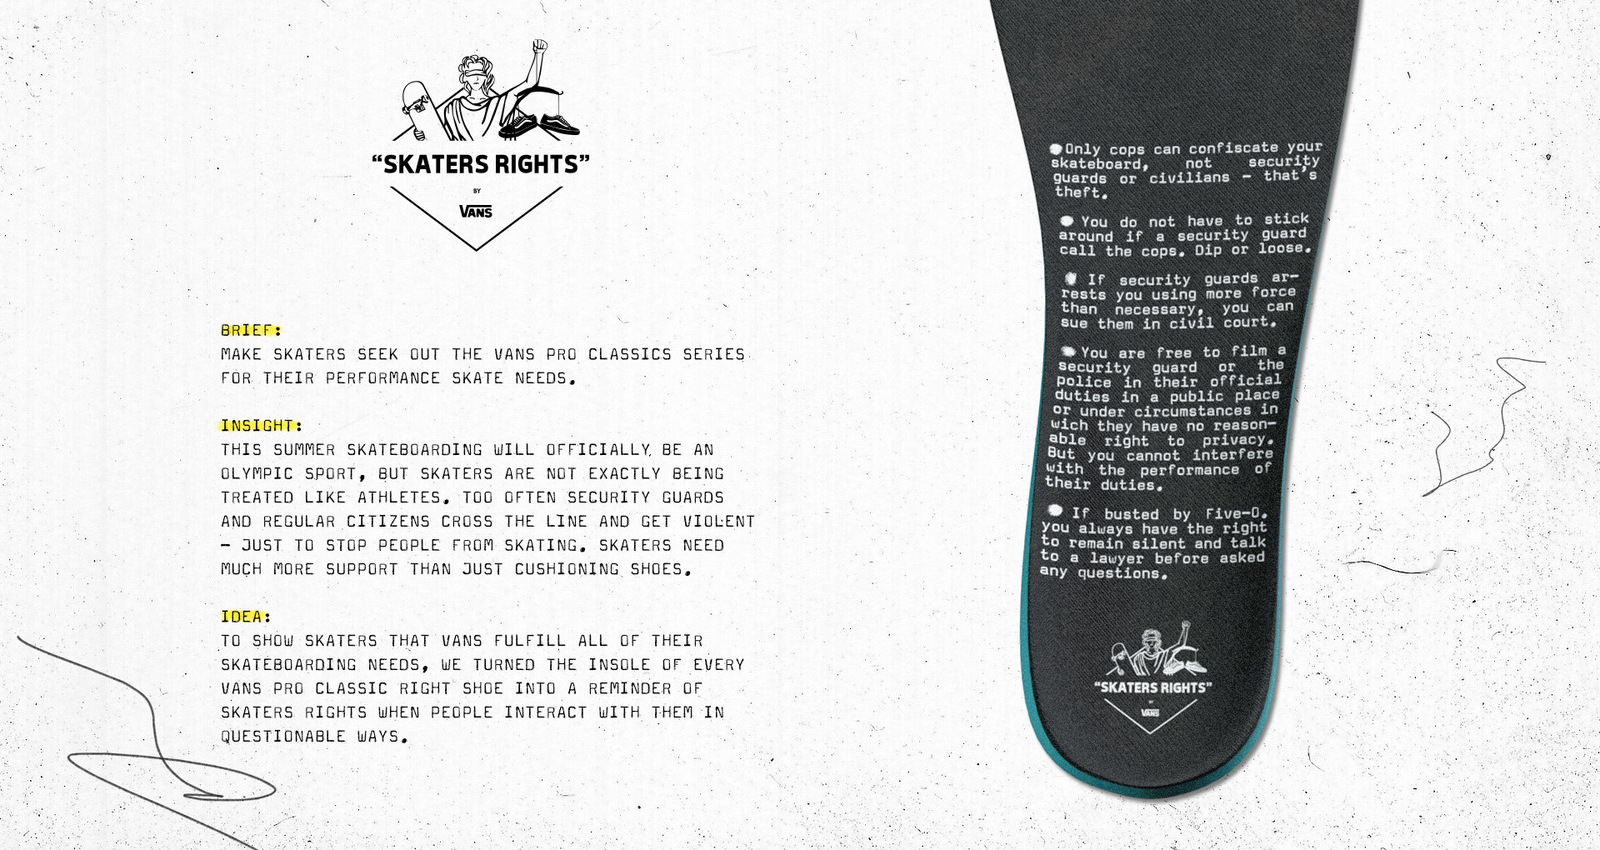 Skaters Rights